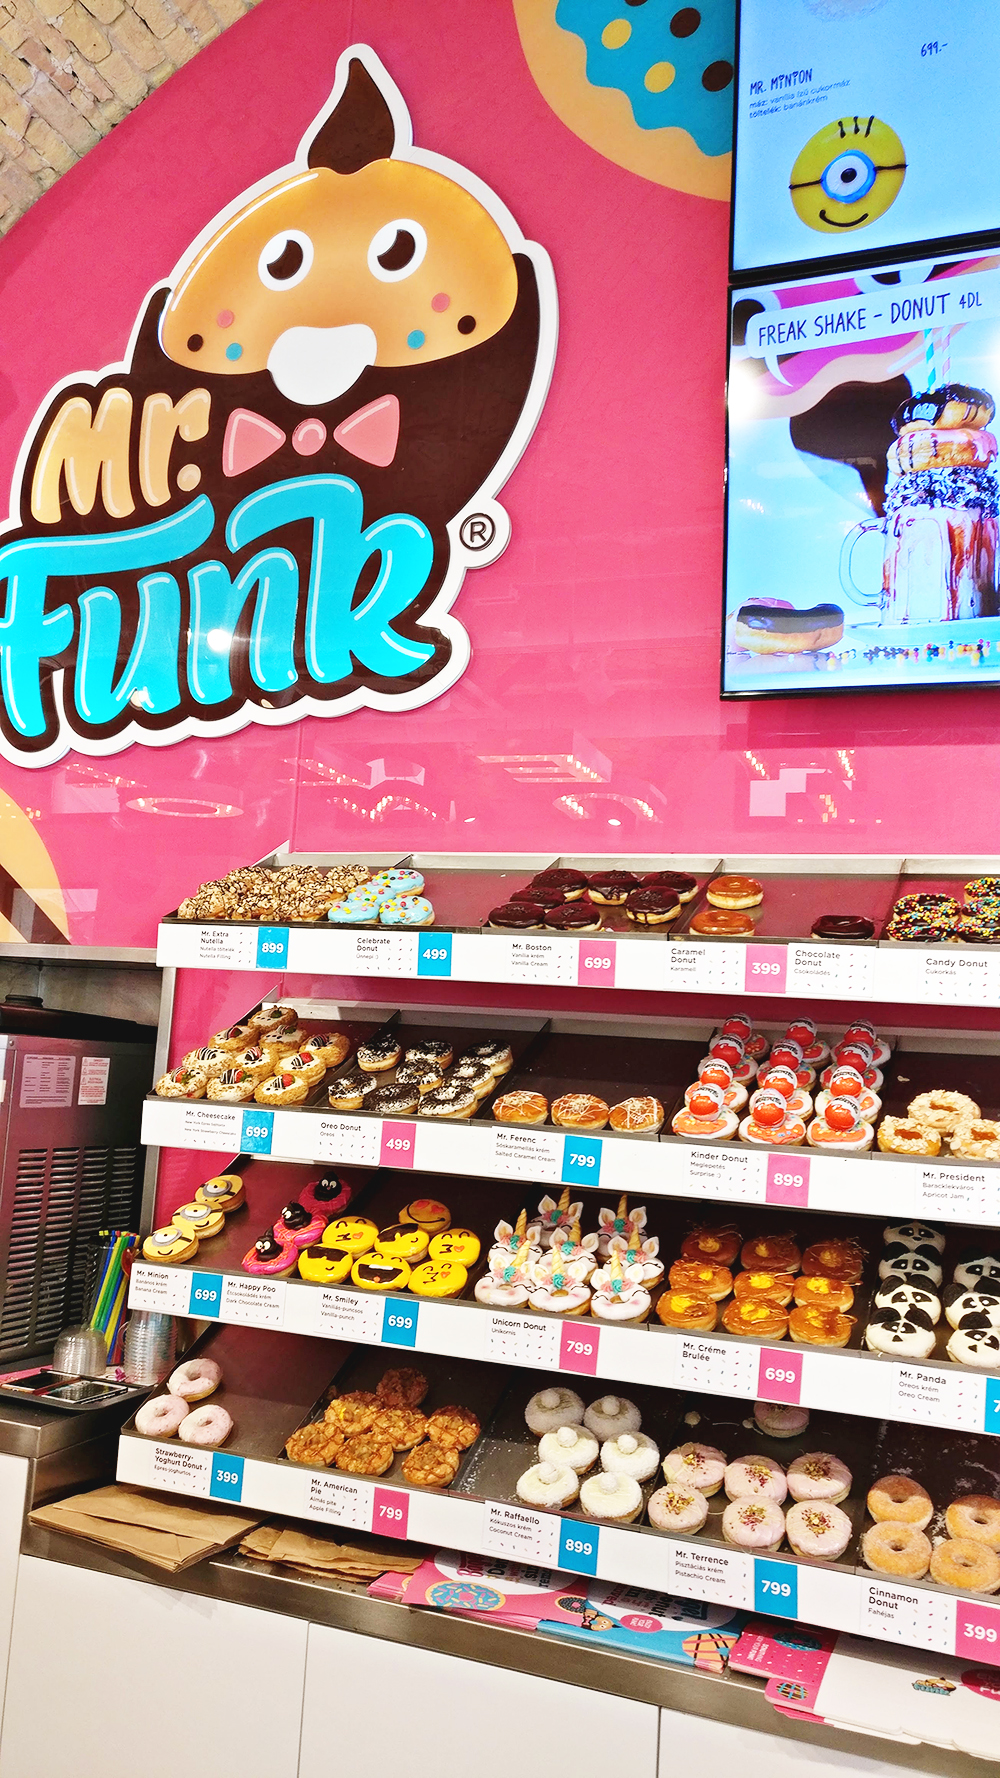 Magical donut selection in Mr Funk - Unicorn and rainbow food guide to Budapest, Hungary | Aliz's Wonderland #unicorn #unicornfood #budapest #rainbowfood #budapestfood